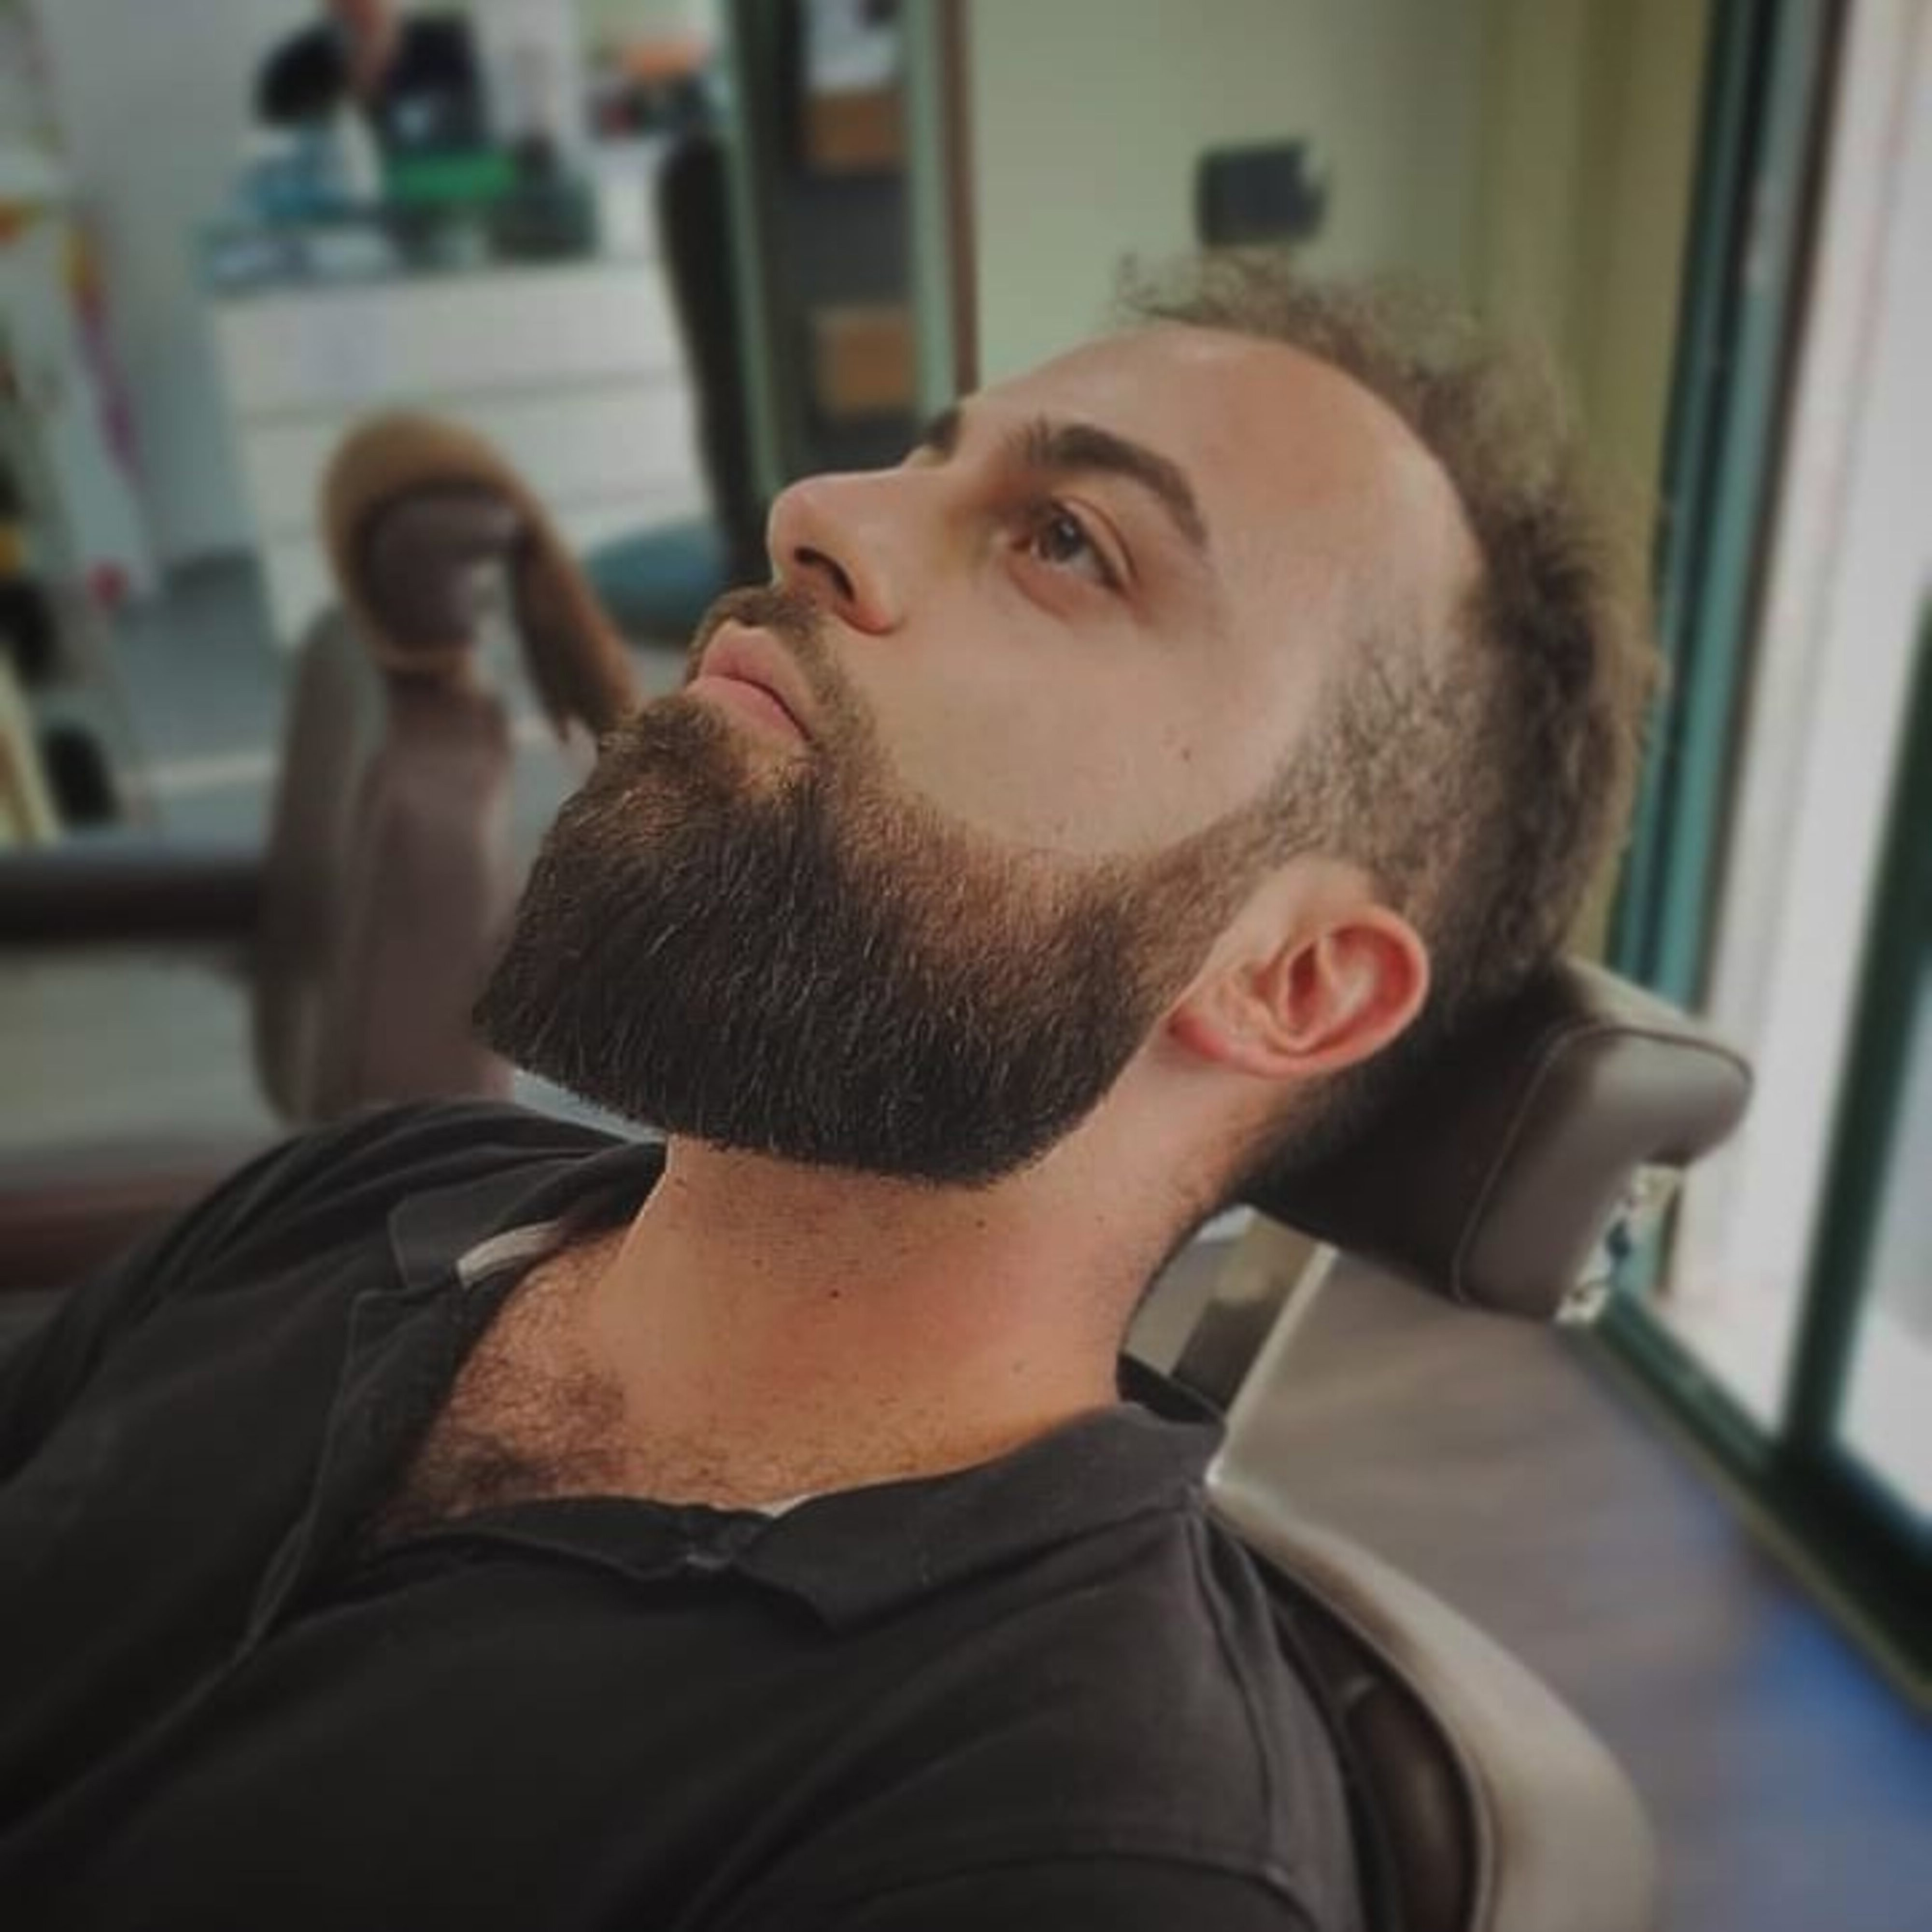 A long jawline beard style for cool men.